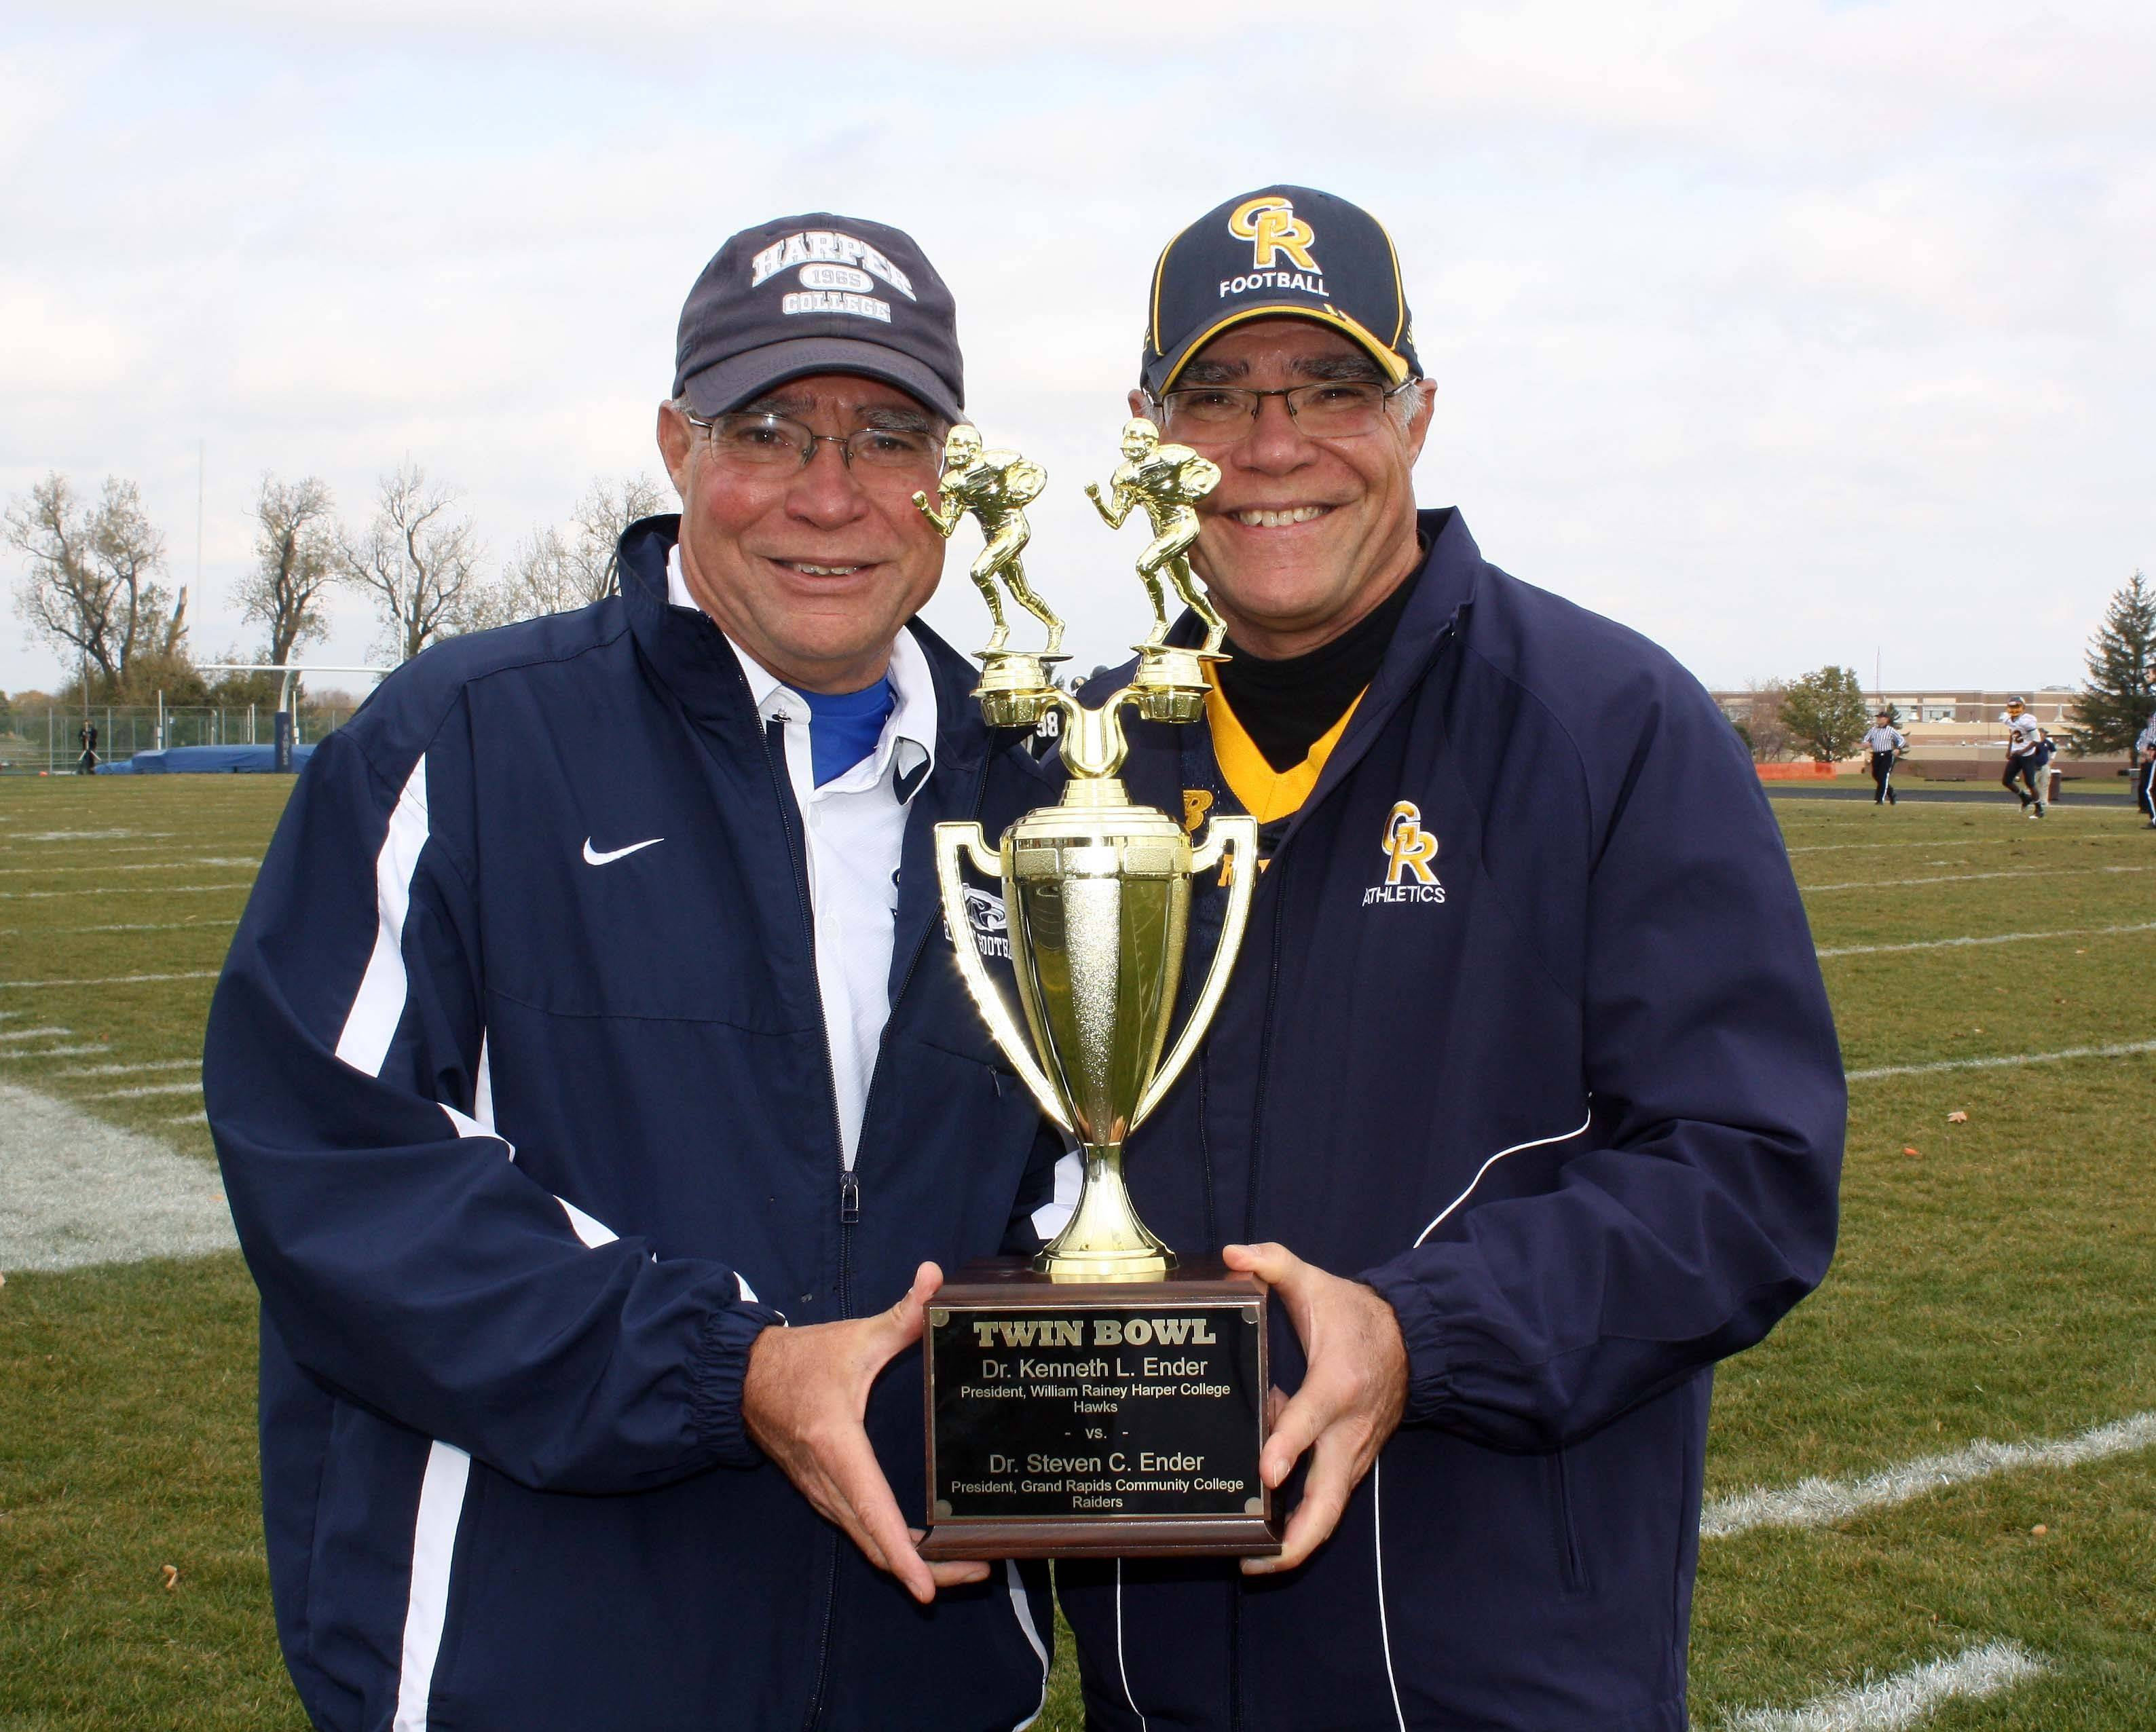 Kenneth Ender, left, and Steven Ender, pose with the Twin Bowl trophy at the 2010 game, hosted by Harper College.